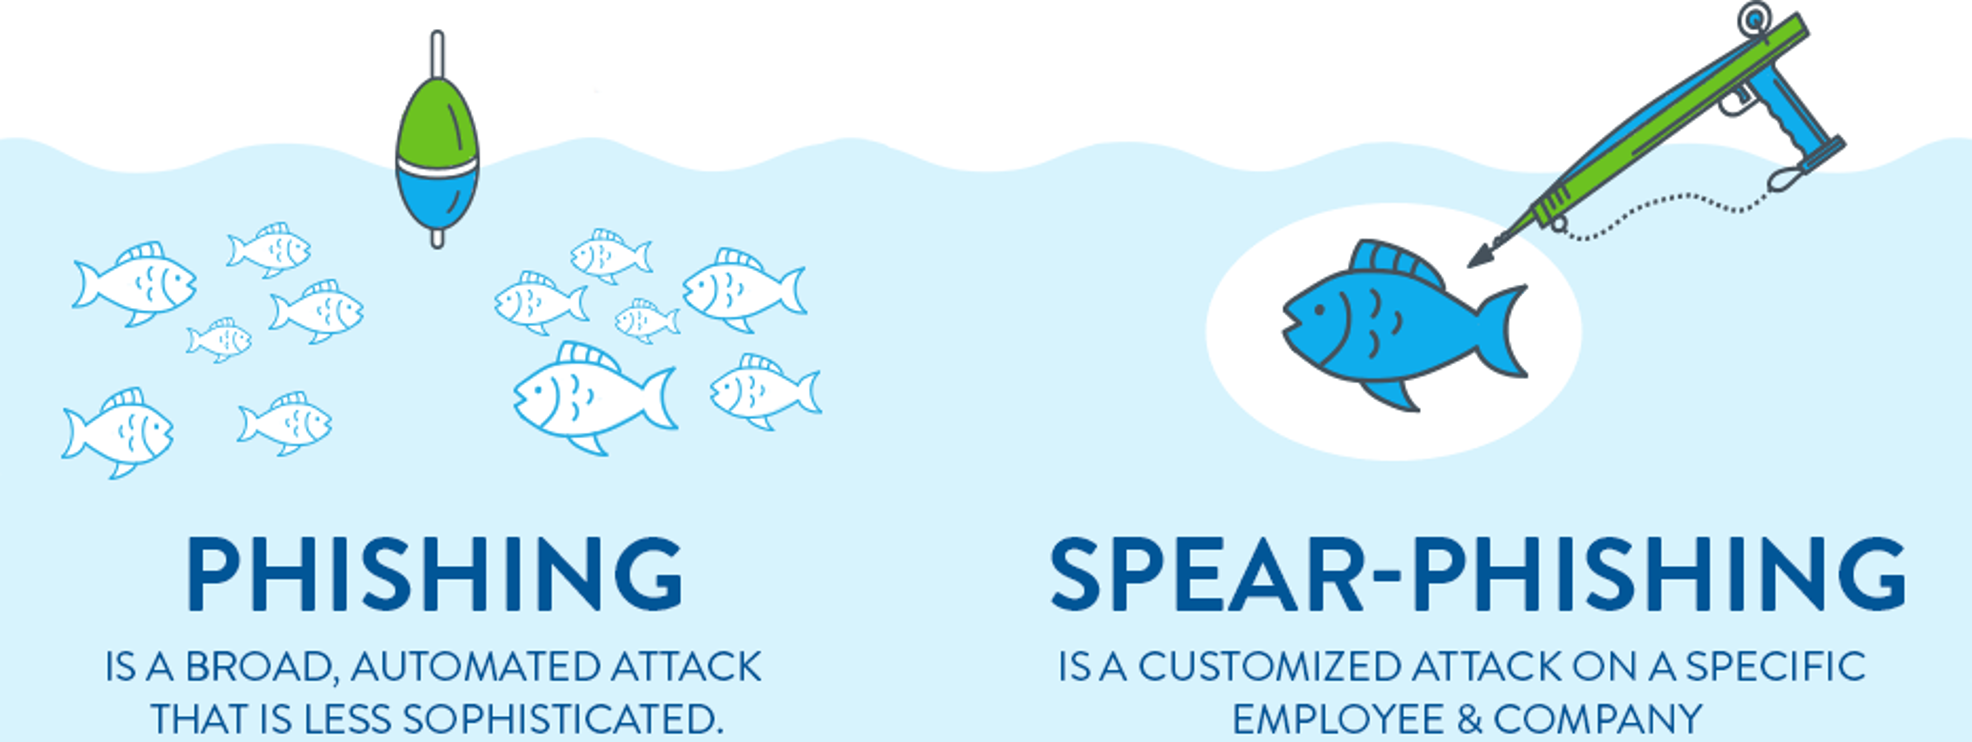 phishing-vs-spear-phishing